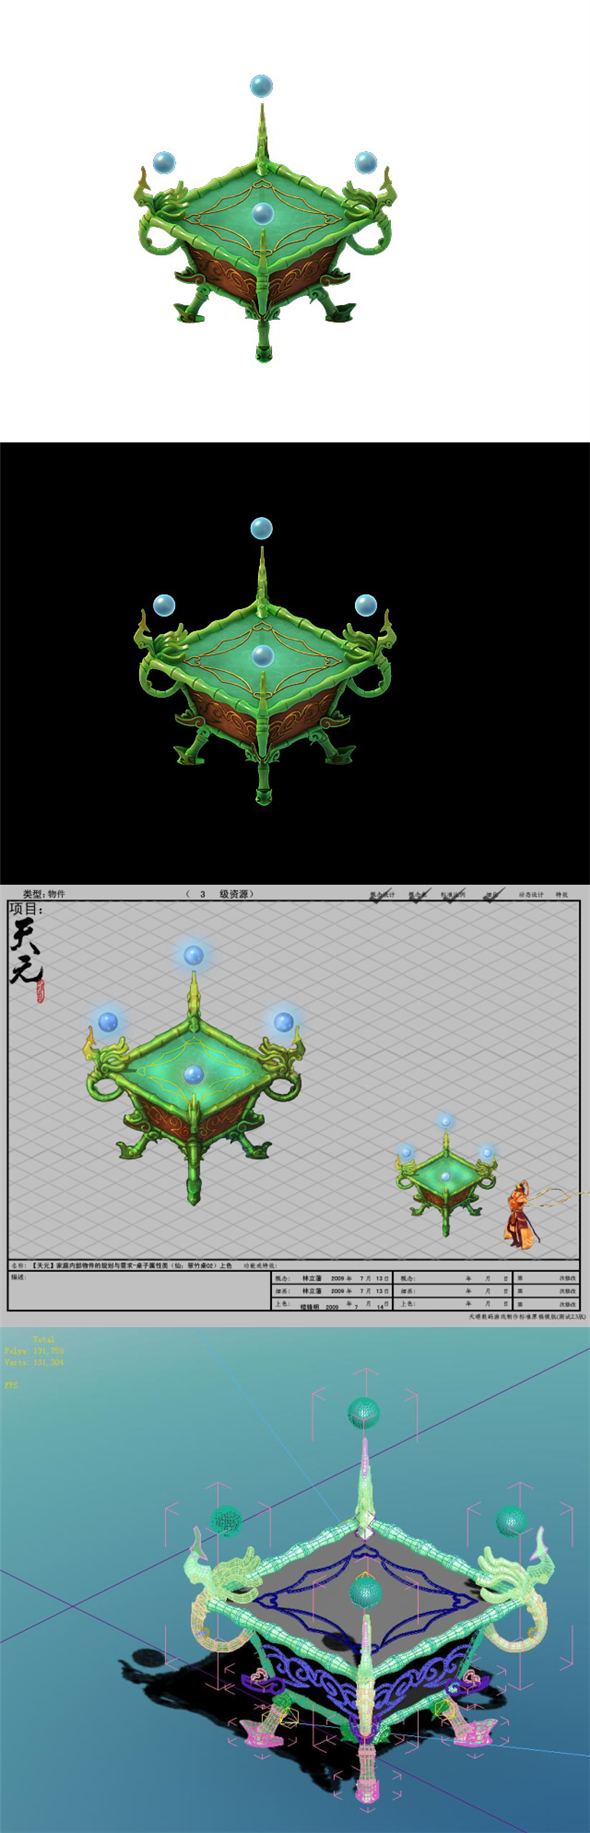 Game Models - Family Objects - Tables 05 - 3DOcean Item for Sale